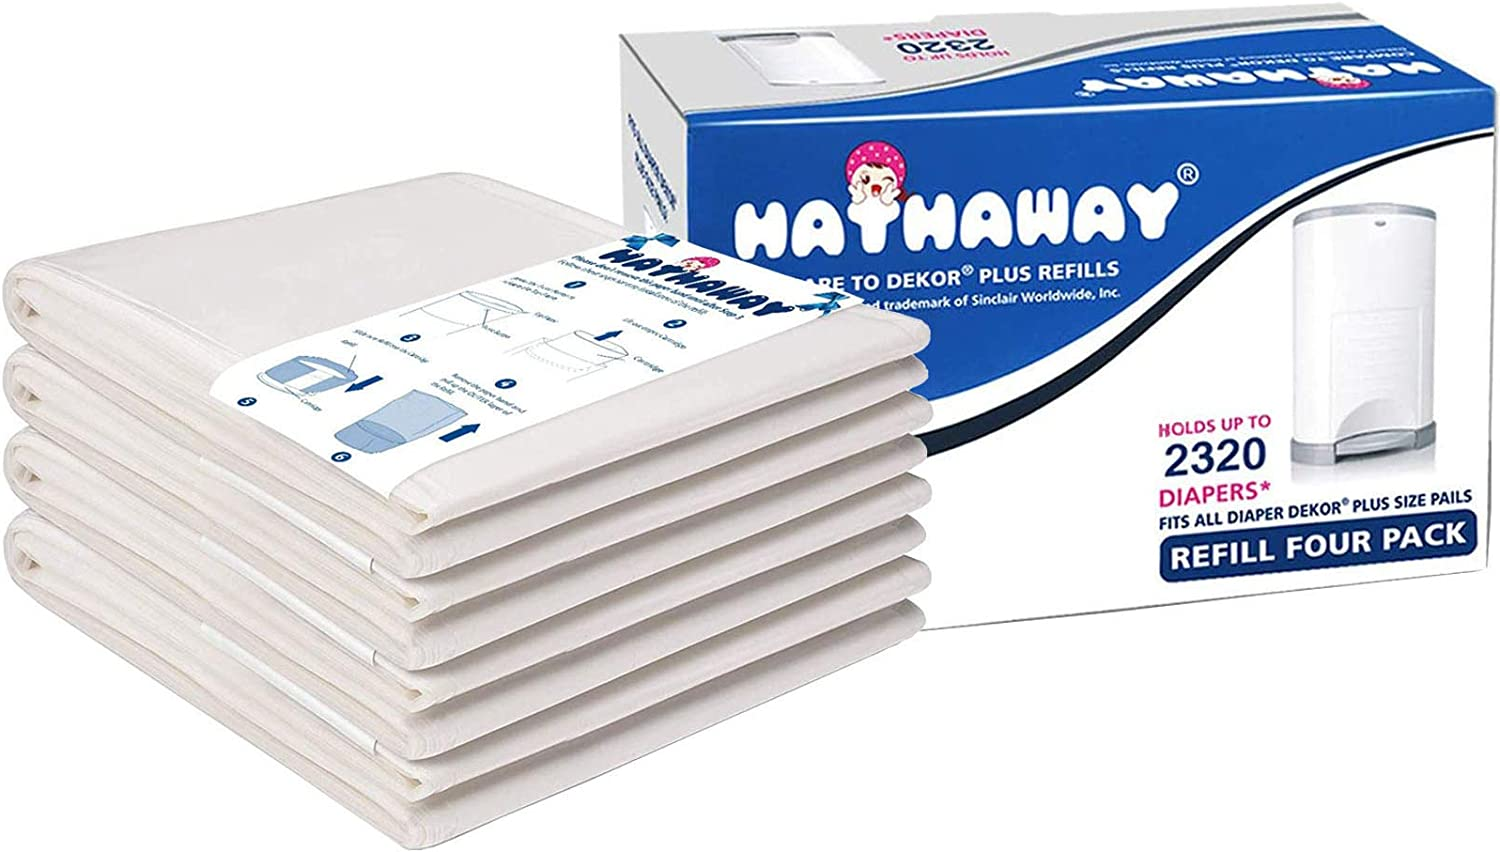 Nappy Liners Diaper Sacks 4 Pack Hold Up to 2320 Diapers Nappy Bin Refills Cassettes Nappy Bags Disposable for 26L Korbell Plus